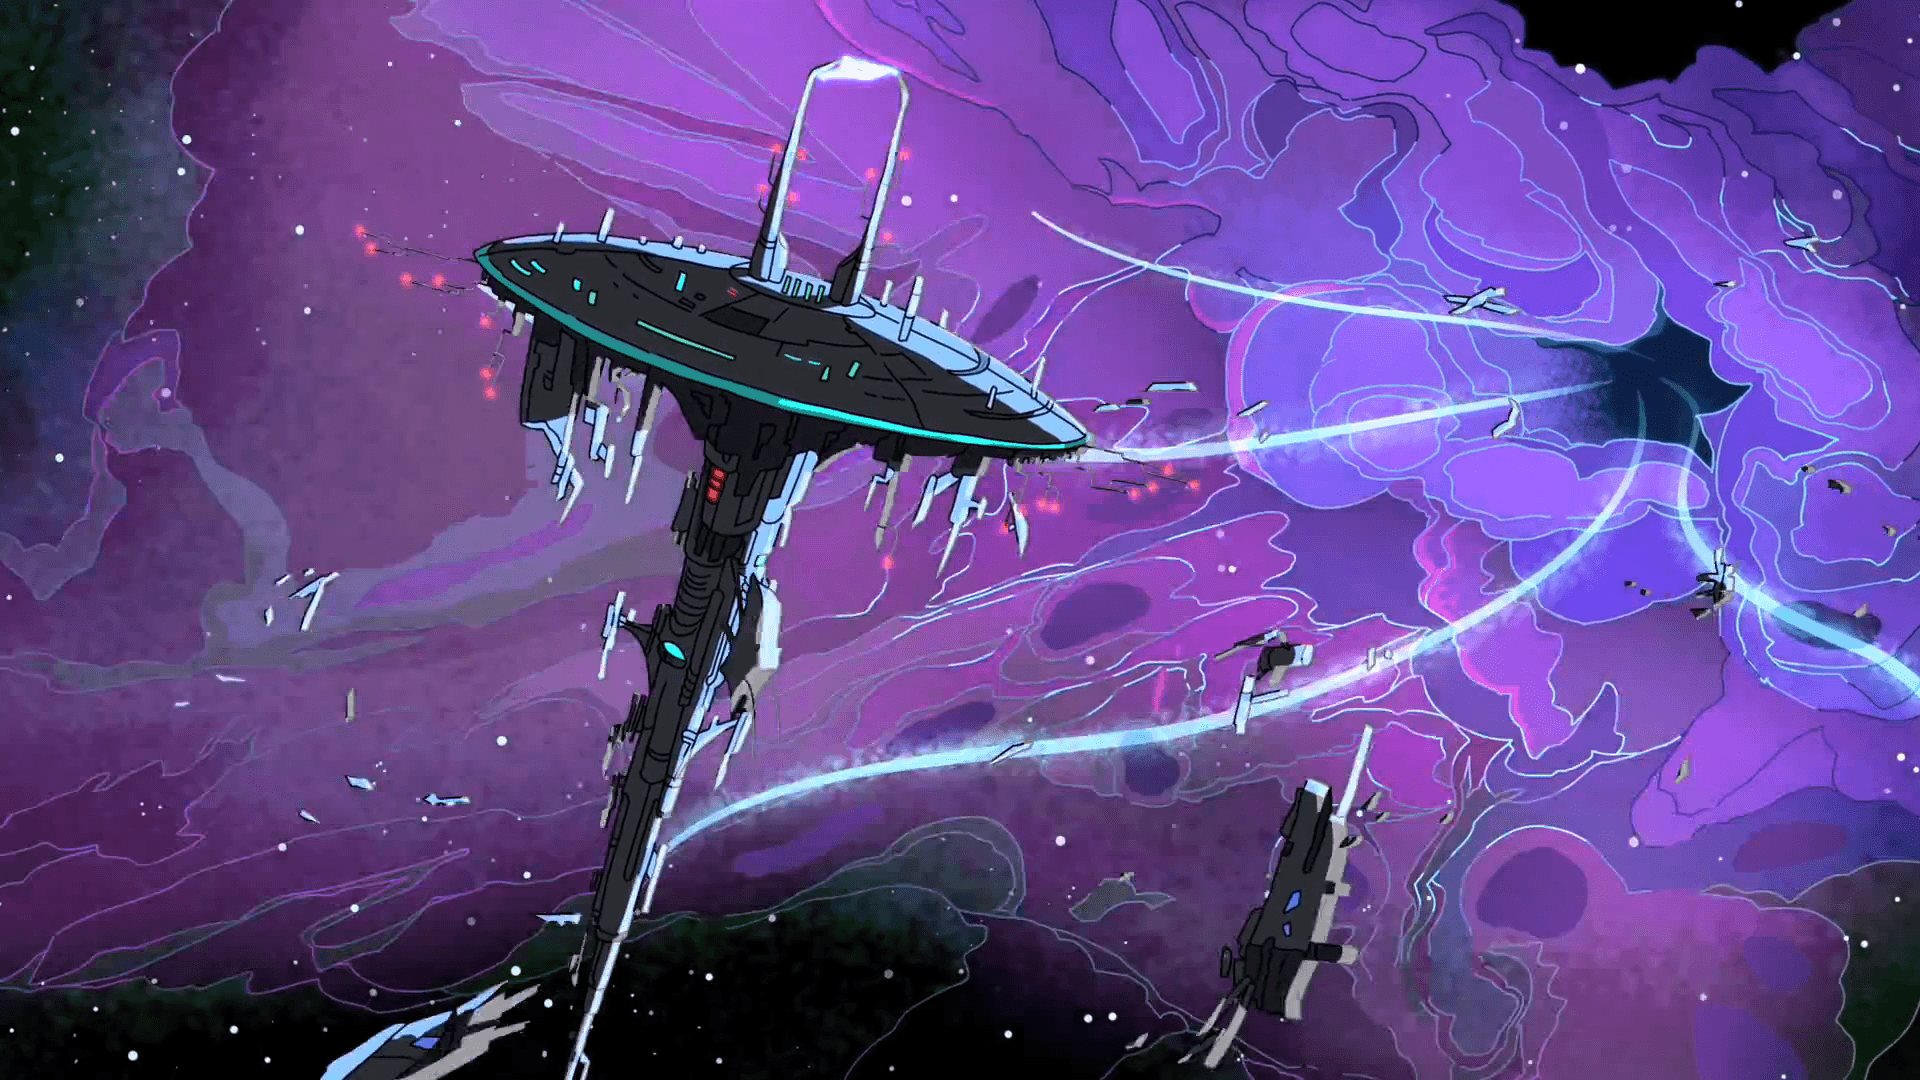 Free download Rick And Morty Wallpapers [1920x1080] for ...